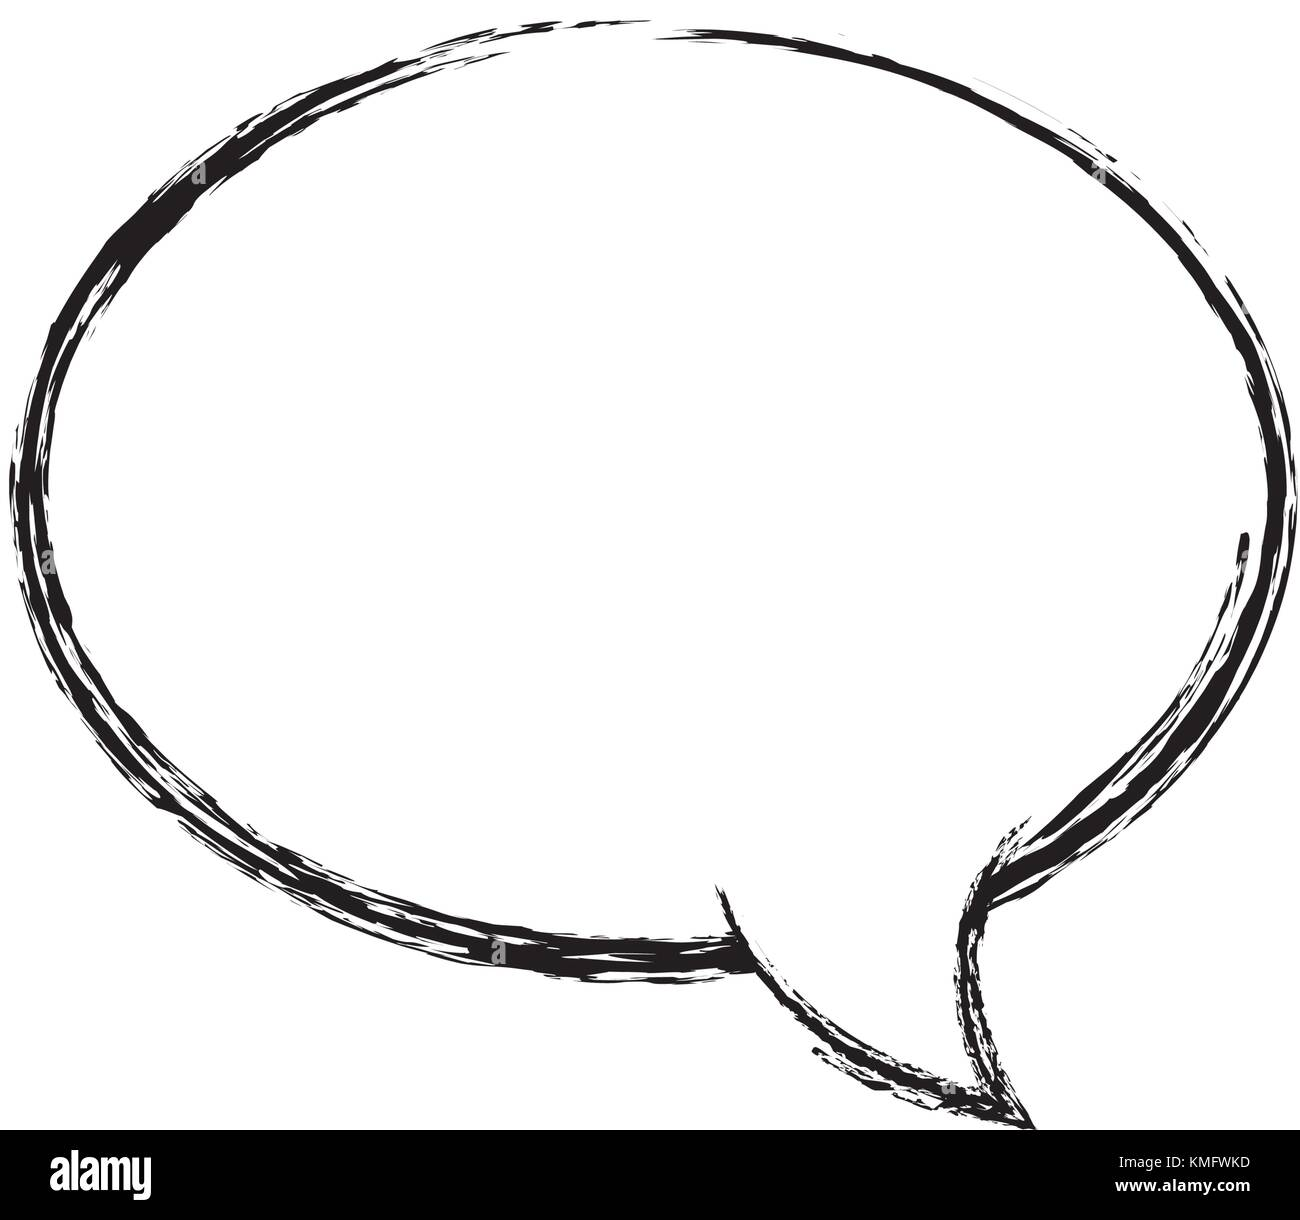 figure oval chat bubble art text message stock vector art